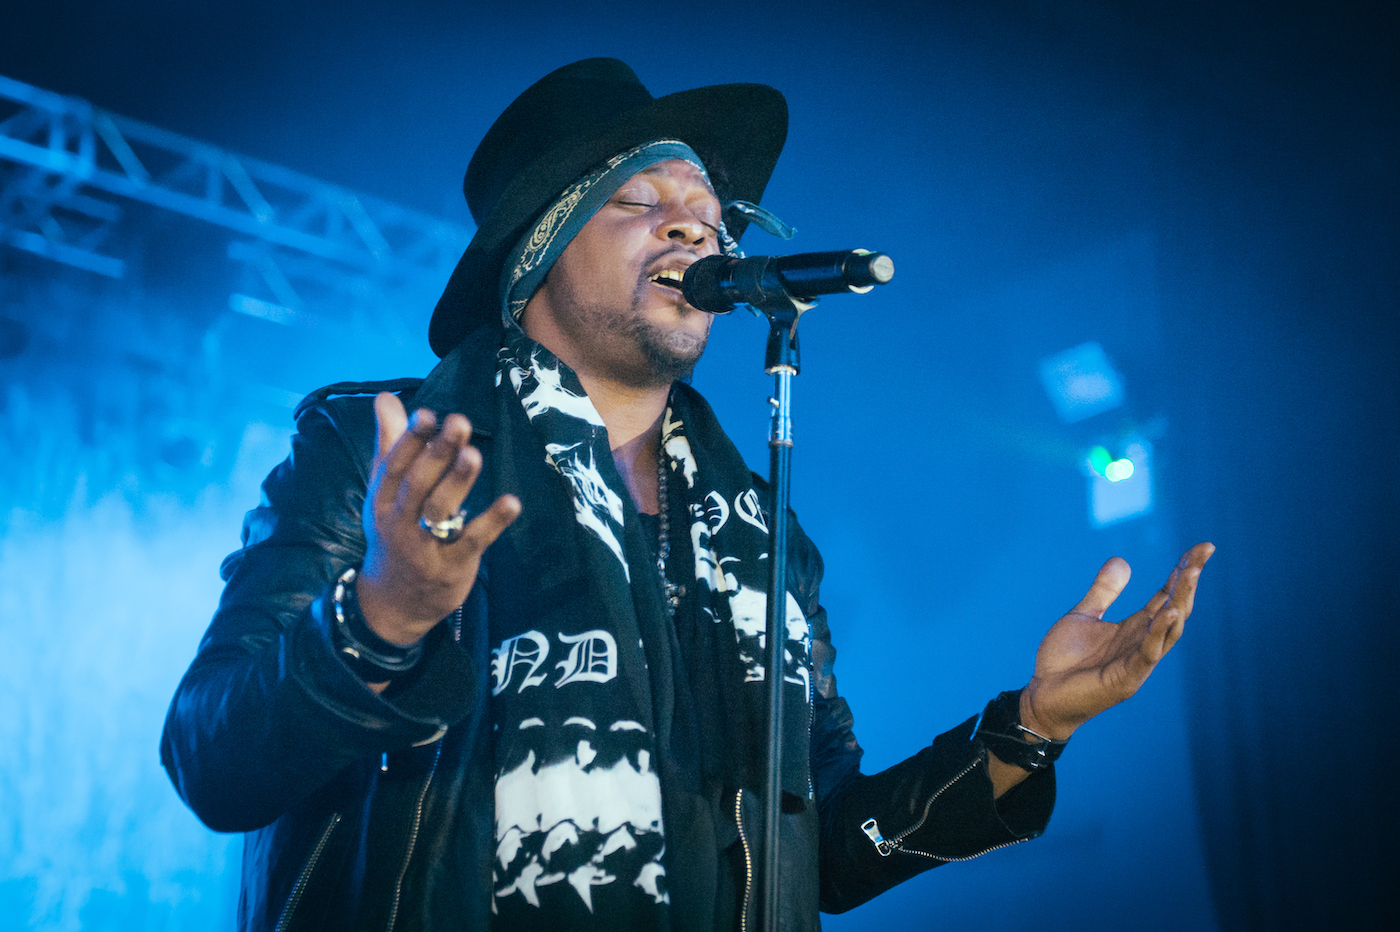 Watch D'Angelo Debut A New Song And Cover Smokey Robinson On Verzuz - Stereogum